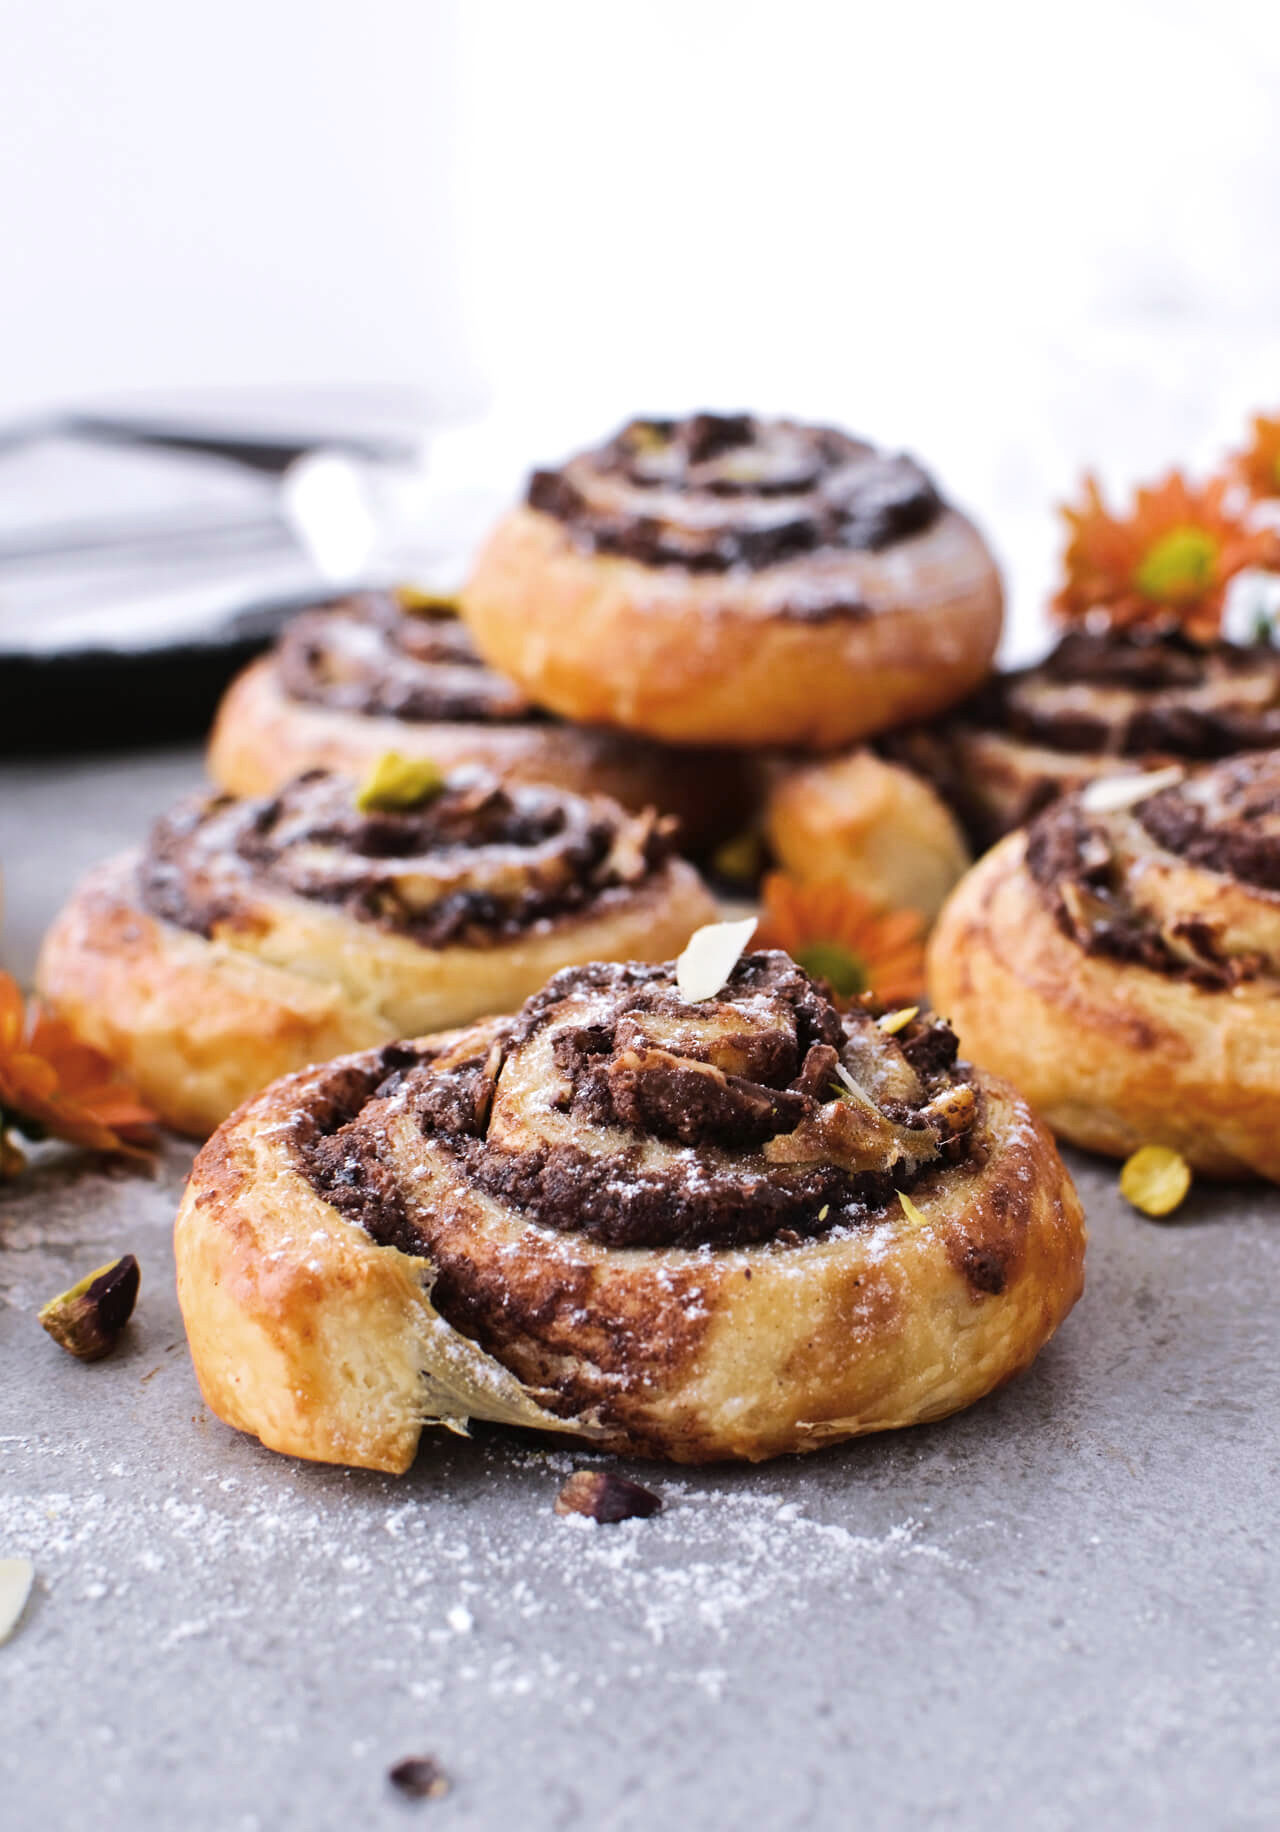 5 ingredients, made under 30 minutes, major flavor all in one recipe for these Pistachio Nutella cinnamon pinwheels.